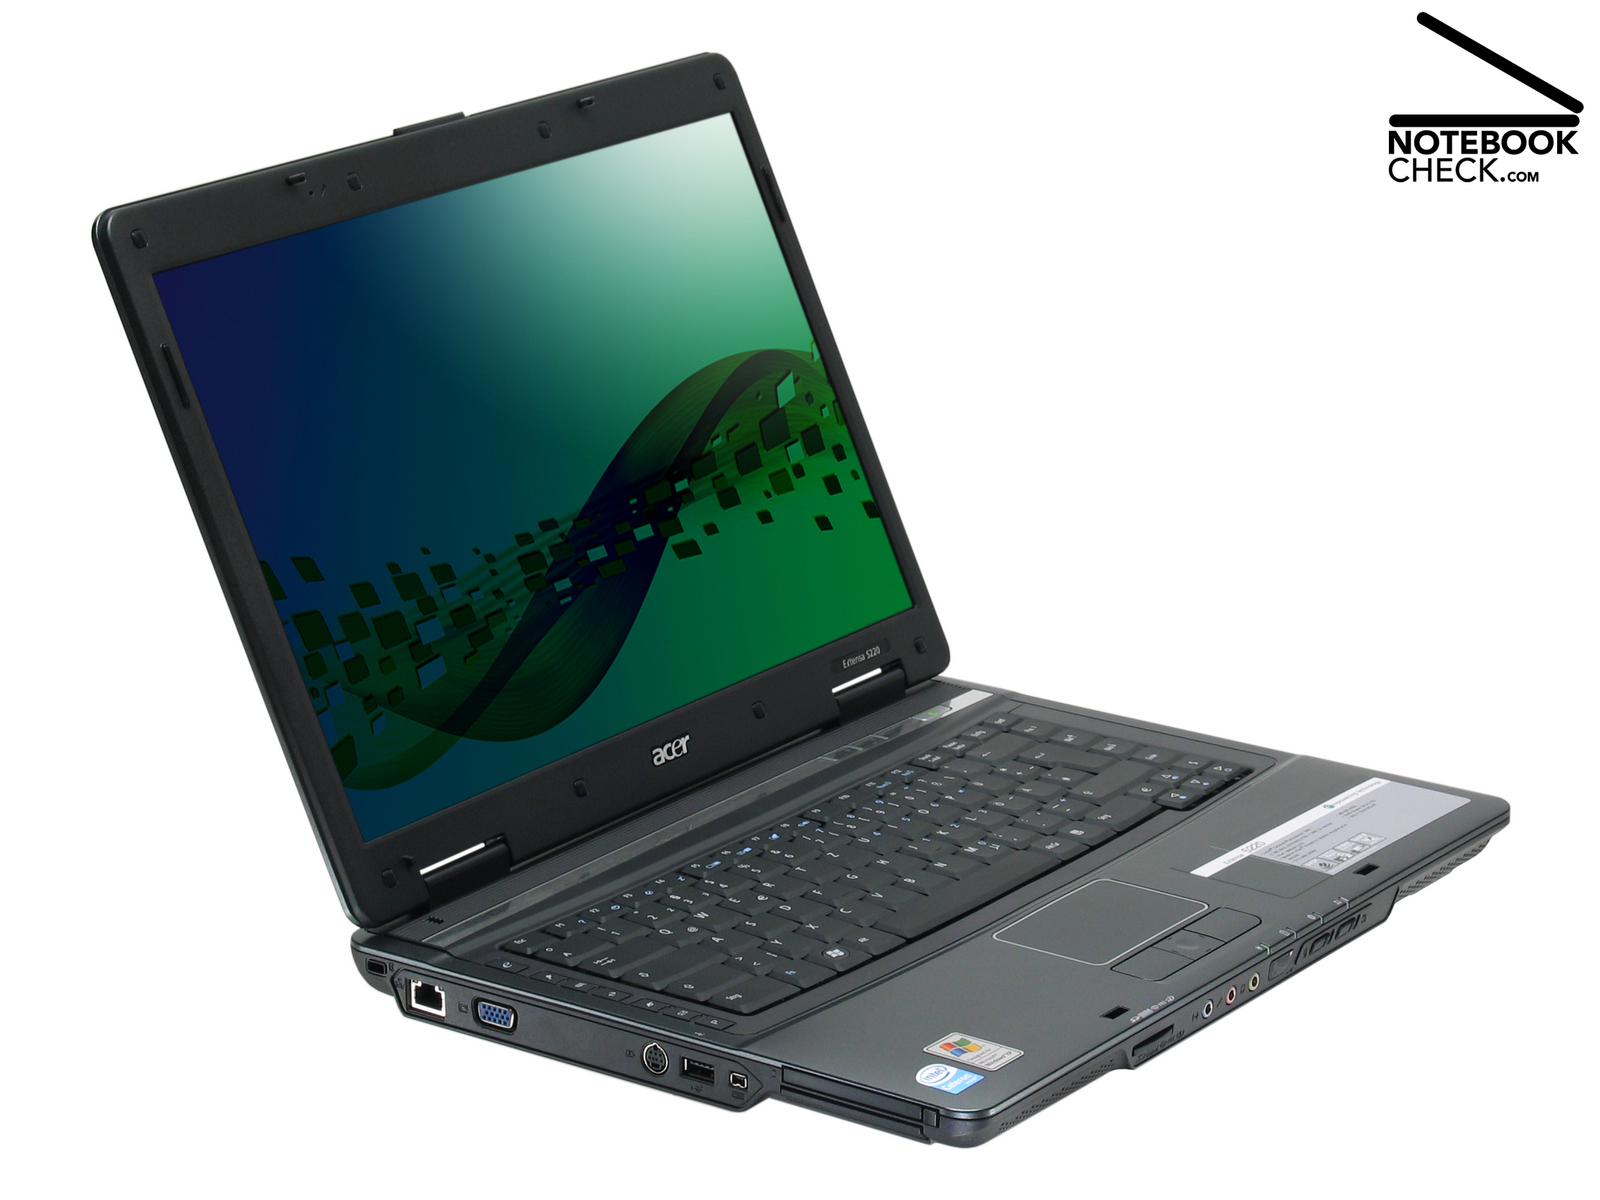 ACER EXTENSA 5430 NOTEBOOK REALTEK AUDIO DRIVER DOWNLOAD (2019)